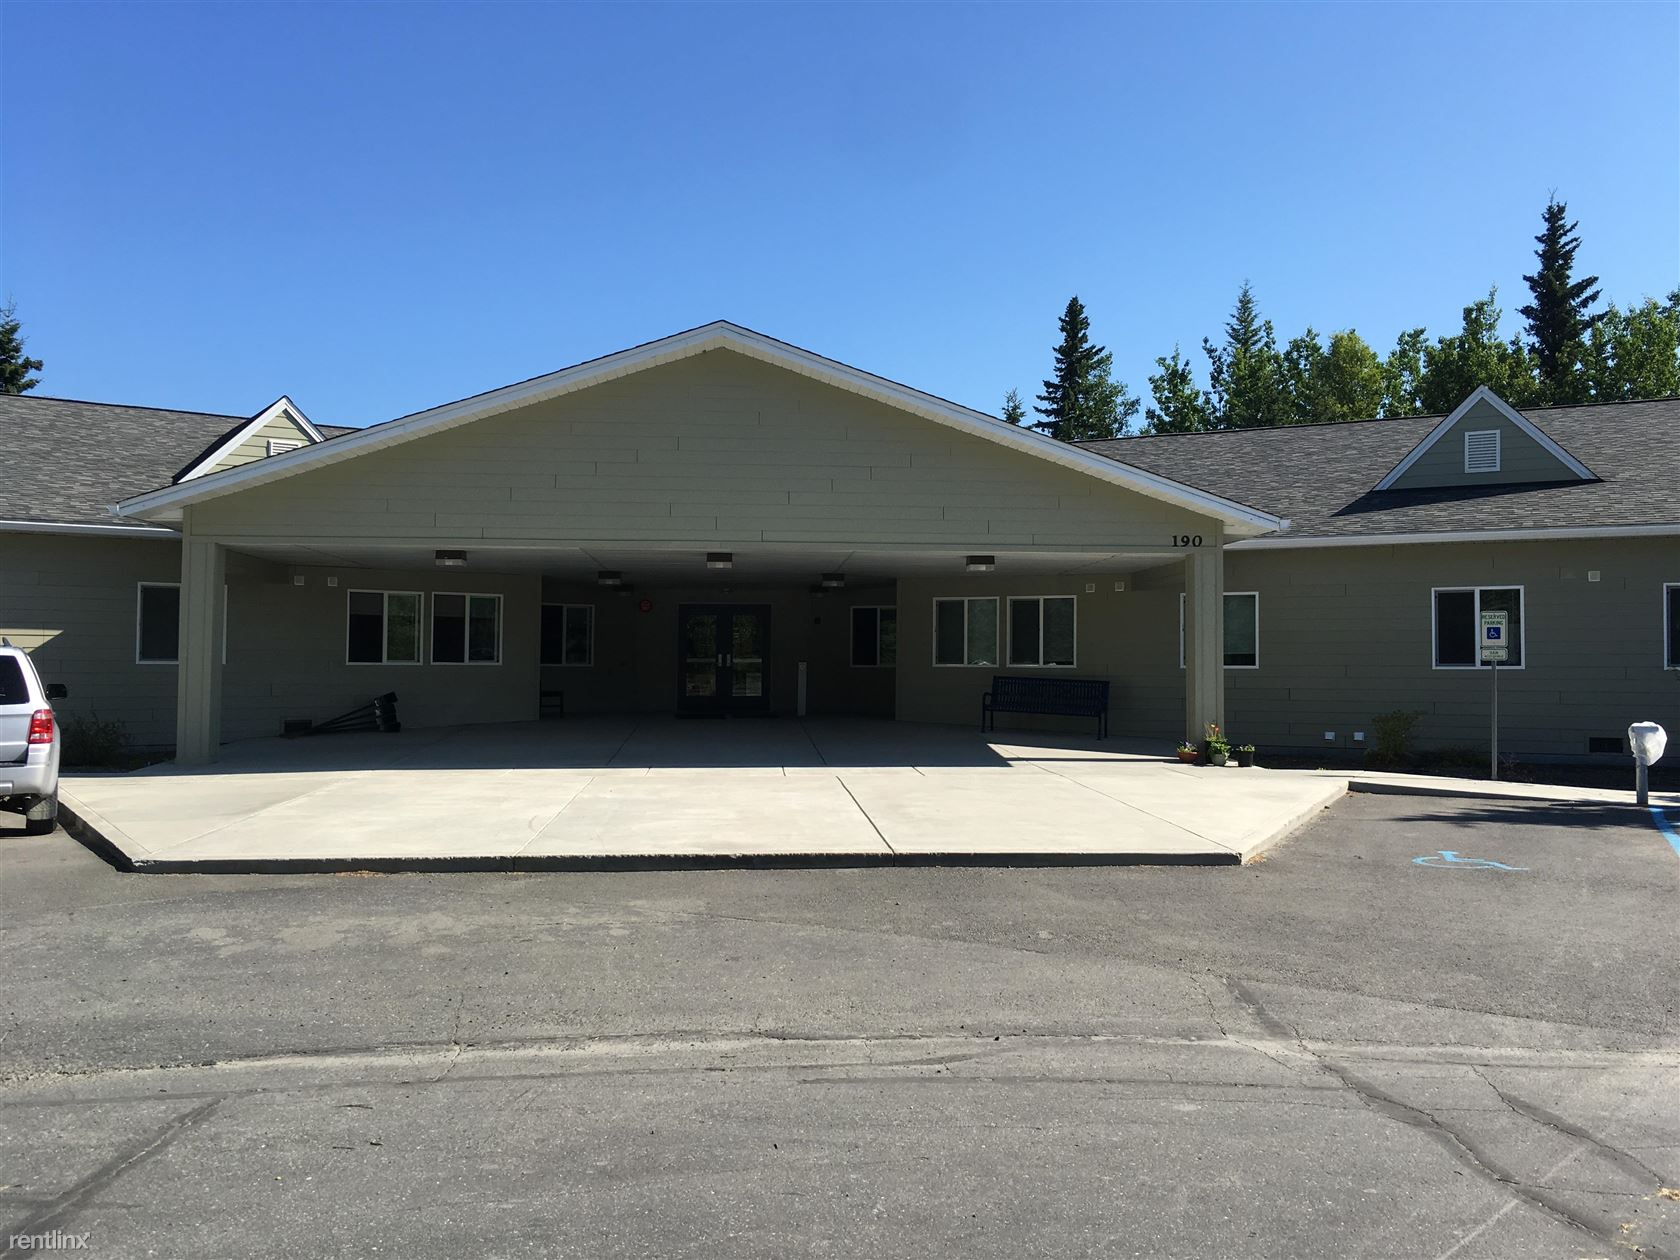 190 W Park Ave, Soldotna, AK - Rent Based On Income